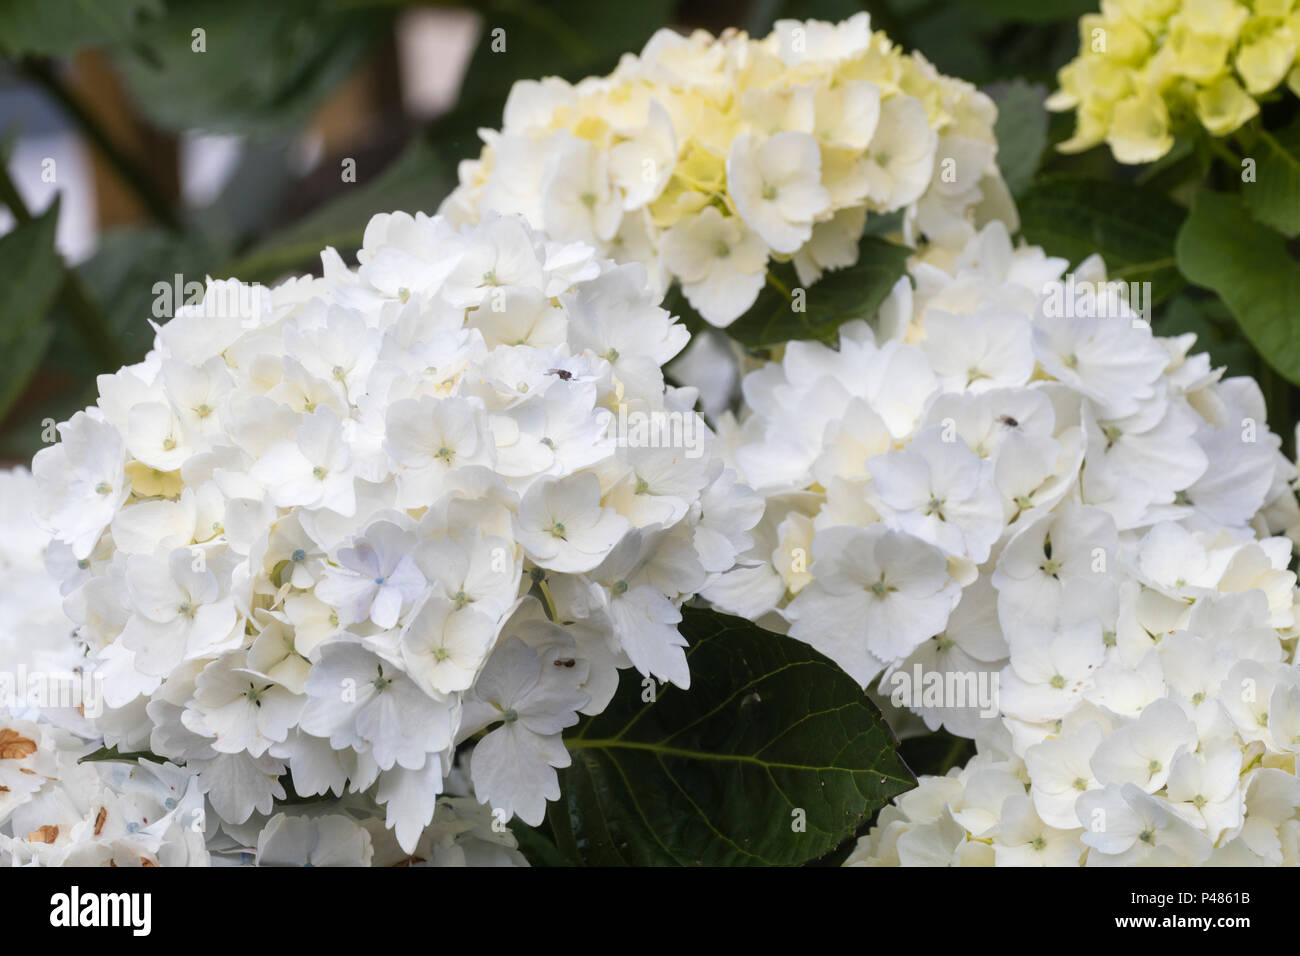 Sterile flowers of the repeat blooming mophead hydrangea shrub, Hydrangea macrophylla 'Madame Emile Mouillère' - Stock Image